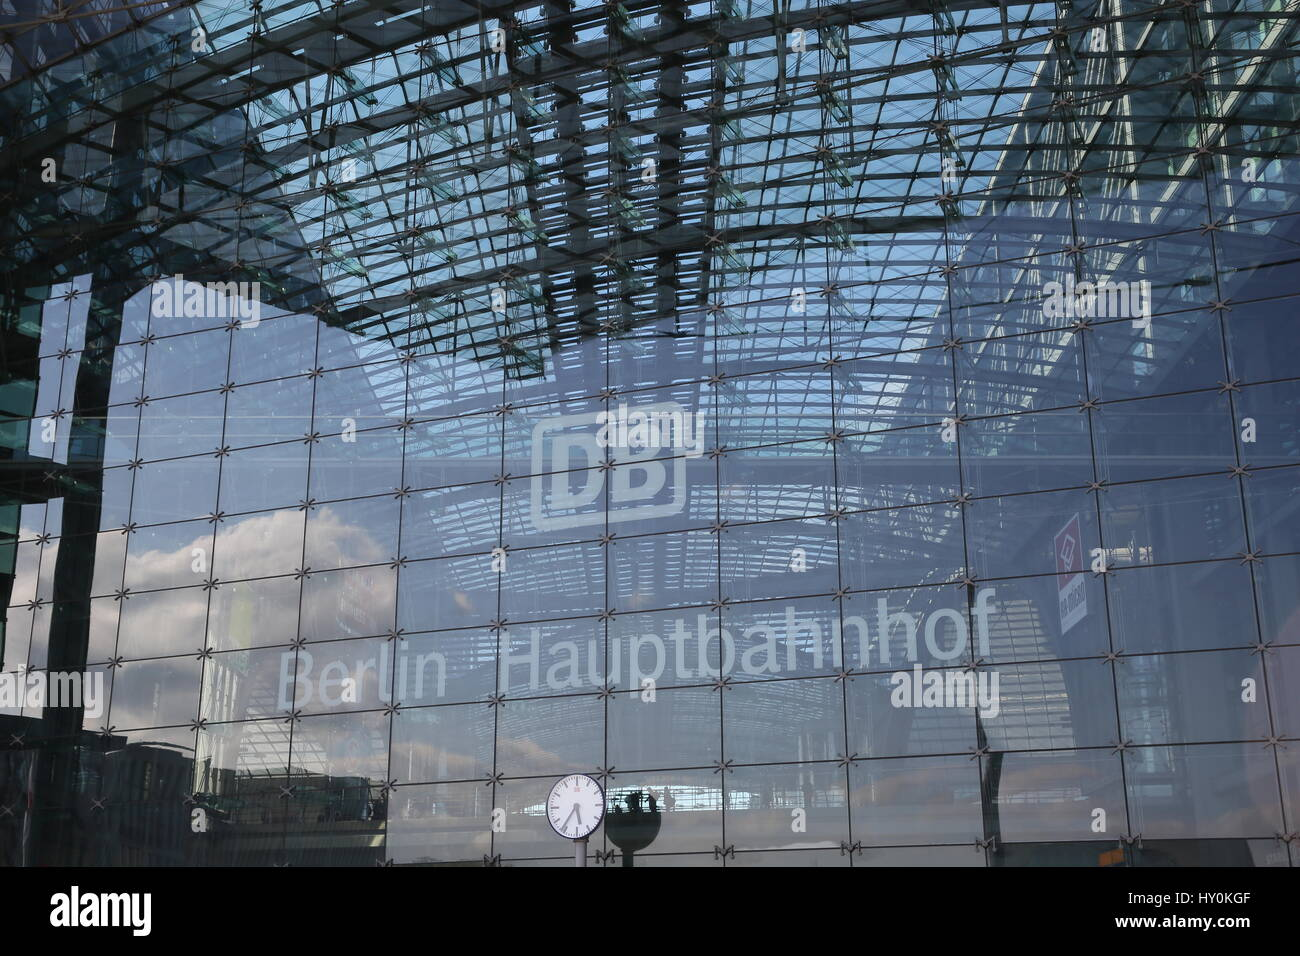 Berlin, Germany, May 7th, 2015: General strike of German train drivers (GdL) leaves the main train station empty Stock Photo